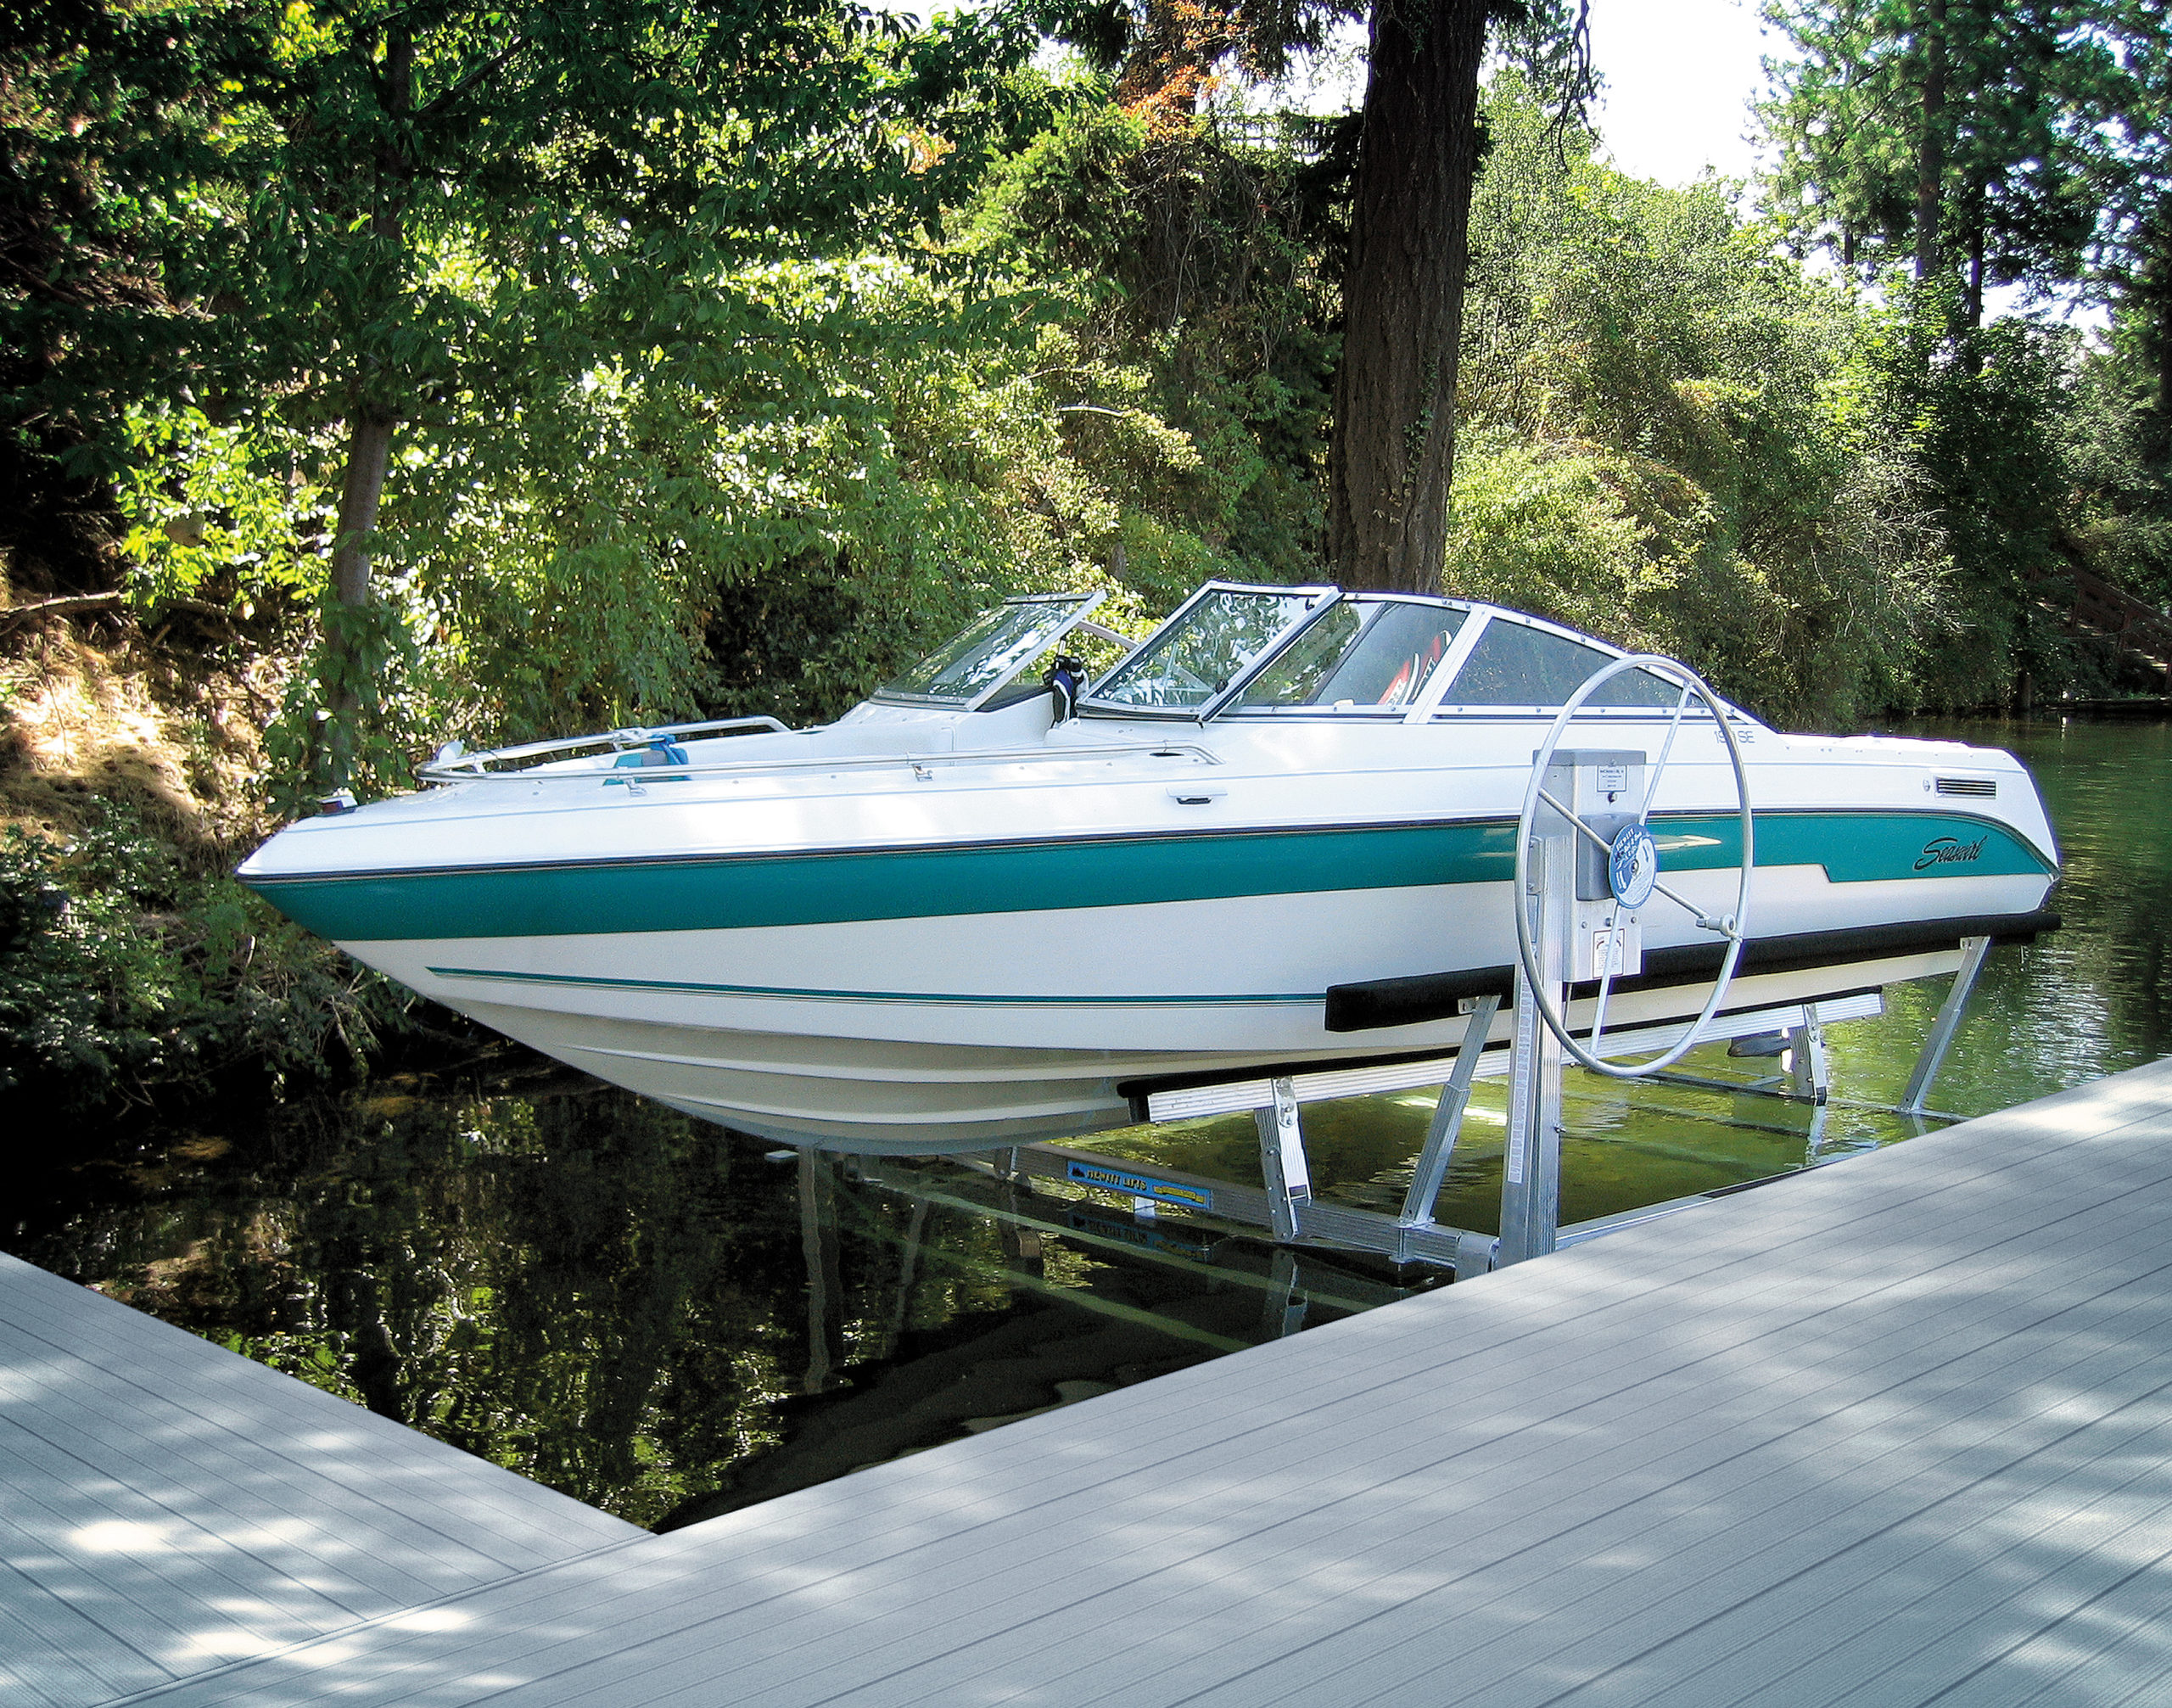 boat on lift over water